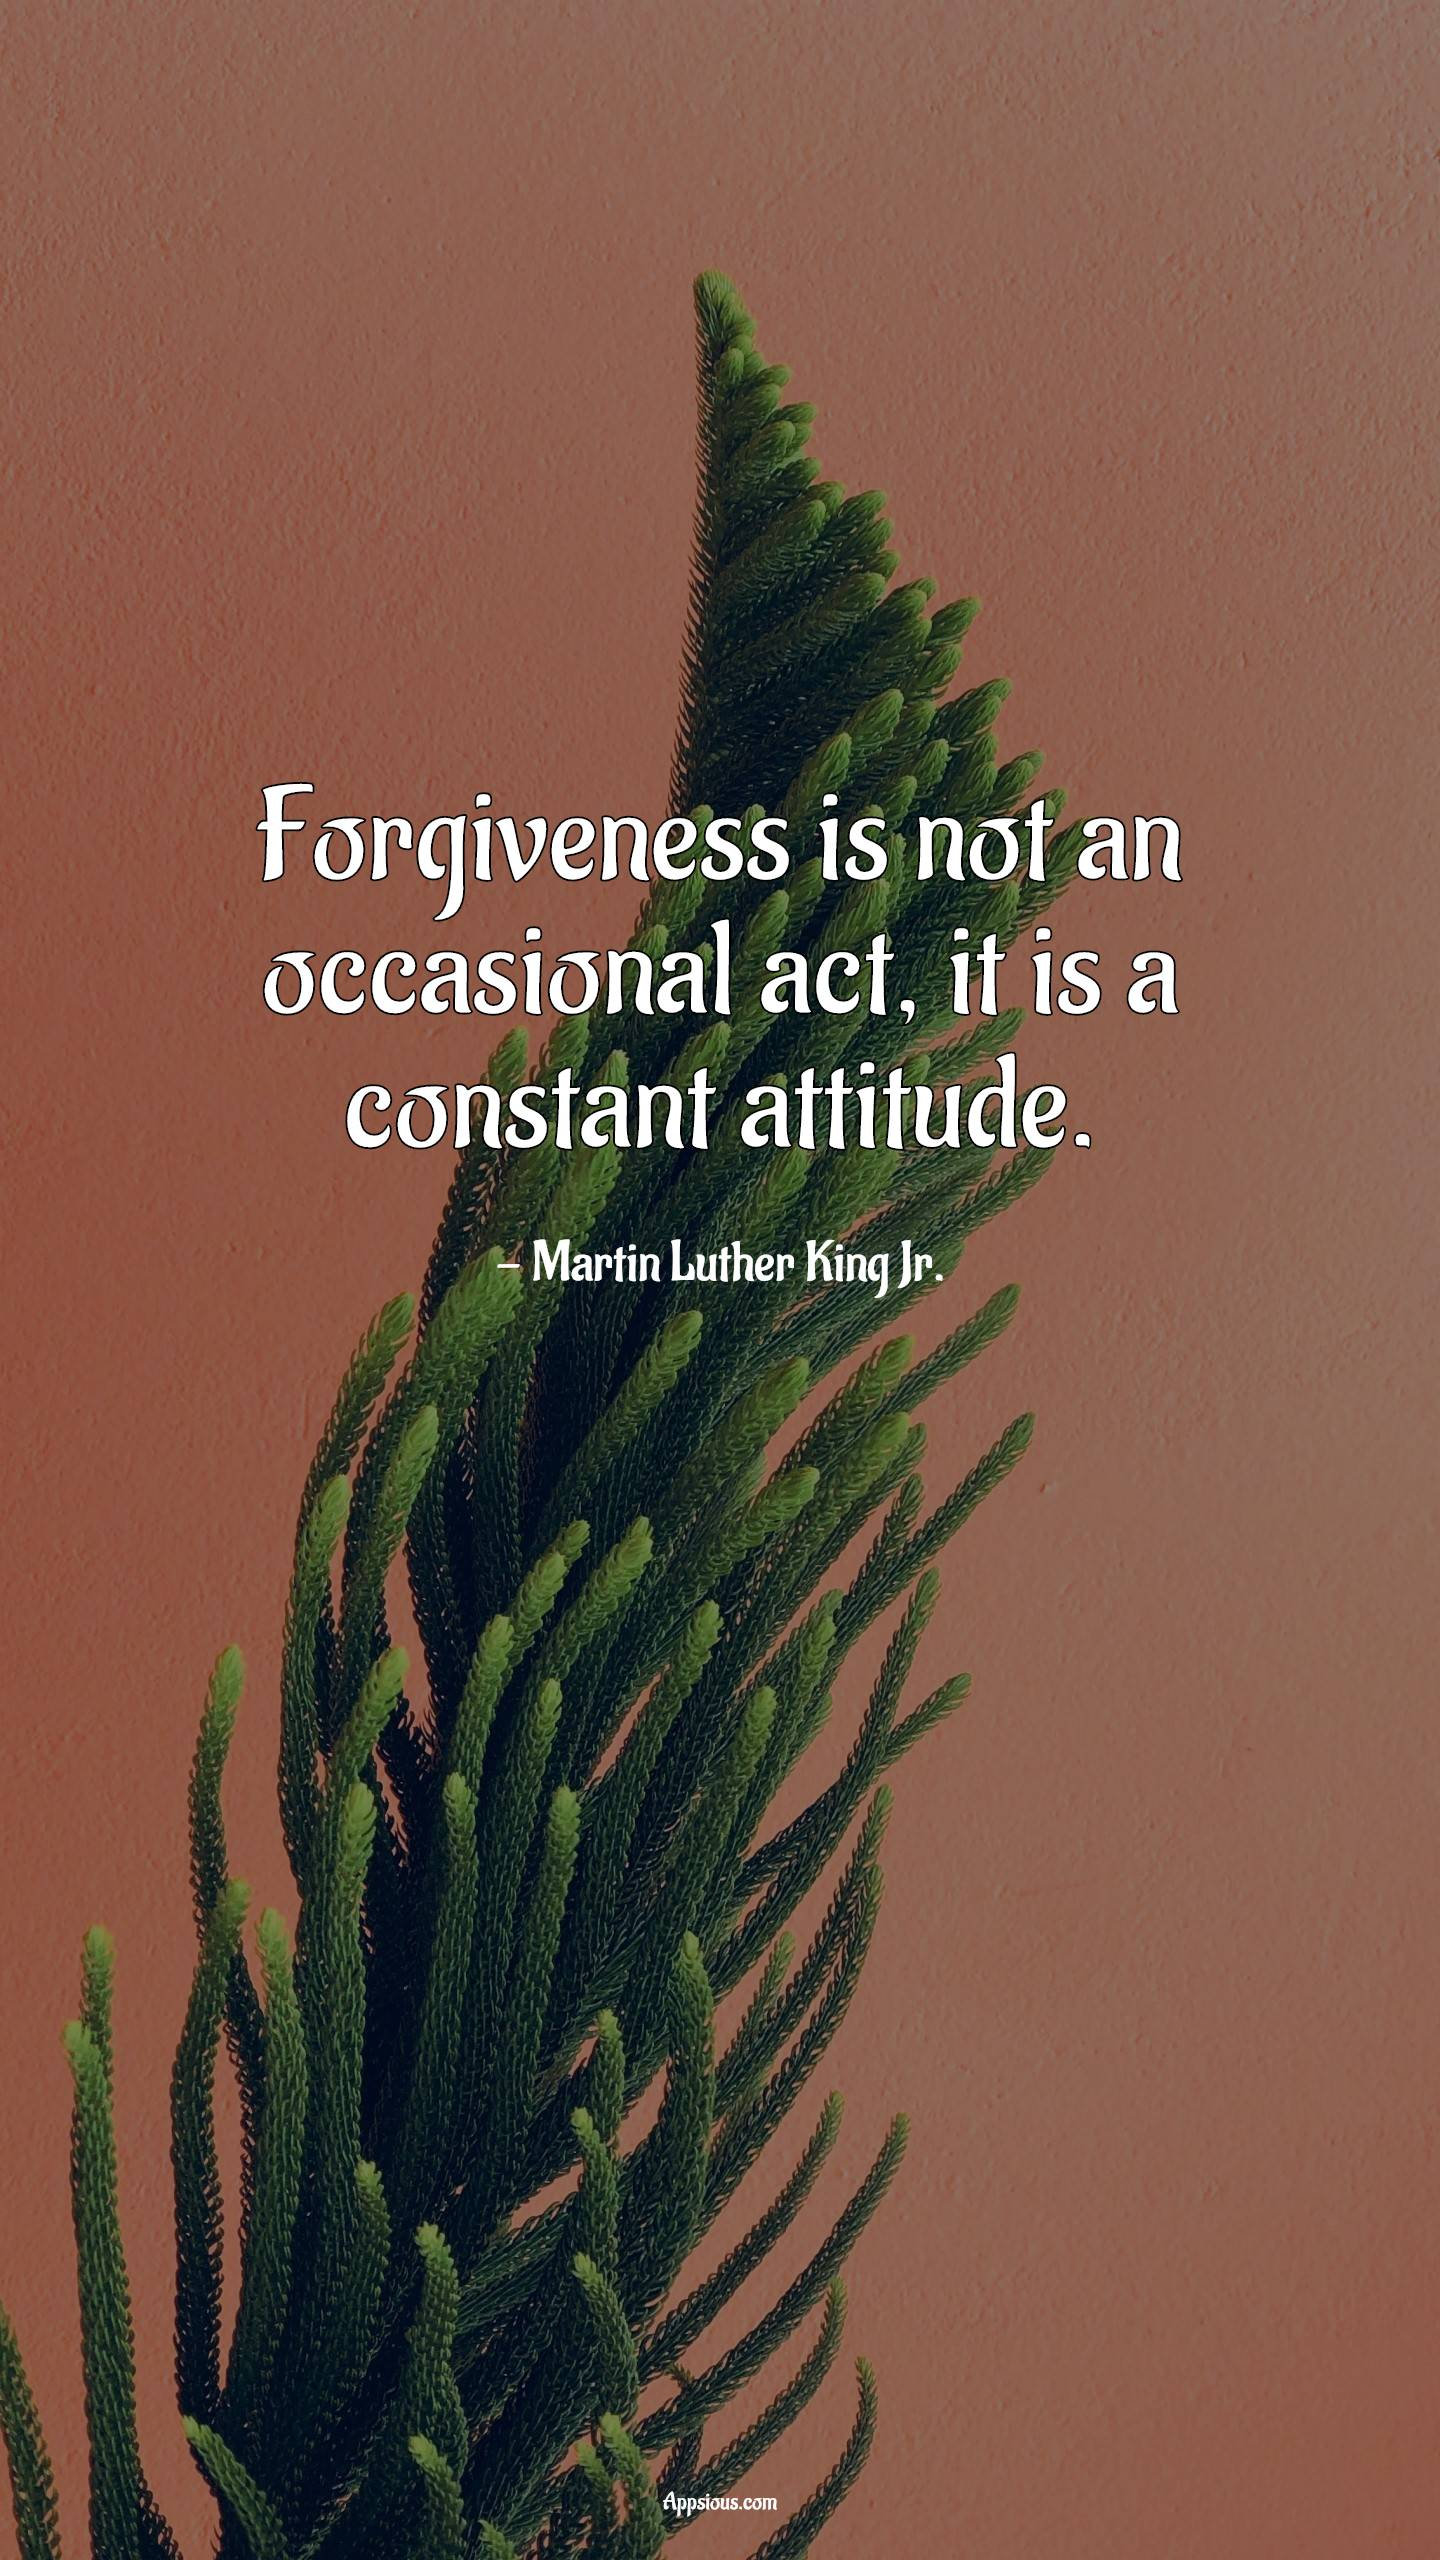 Forgiveness is not an occasional act, it is a constant attitude.